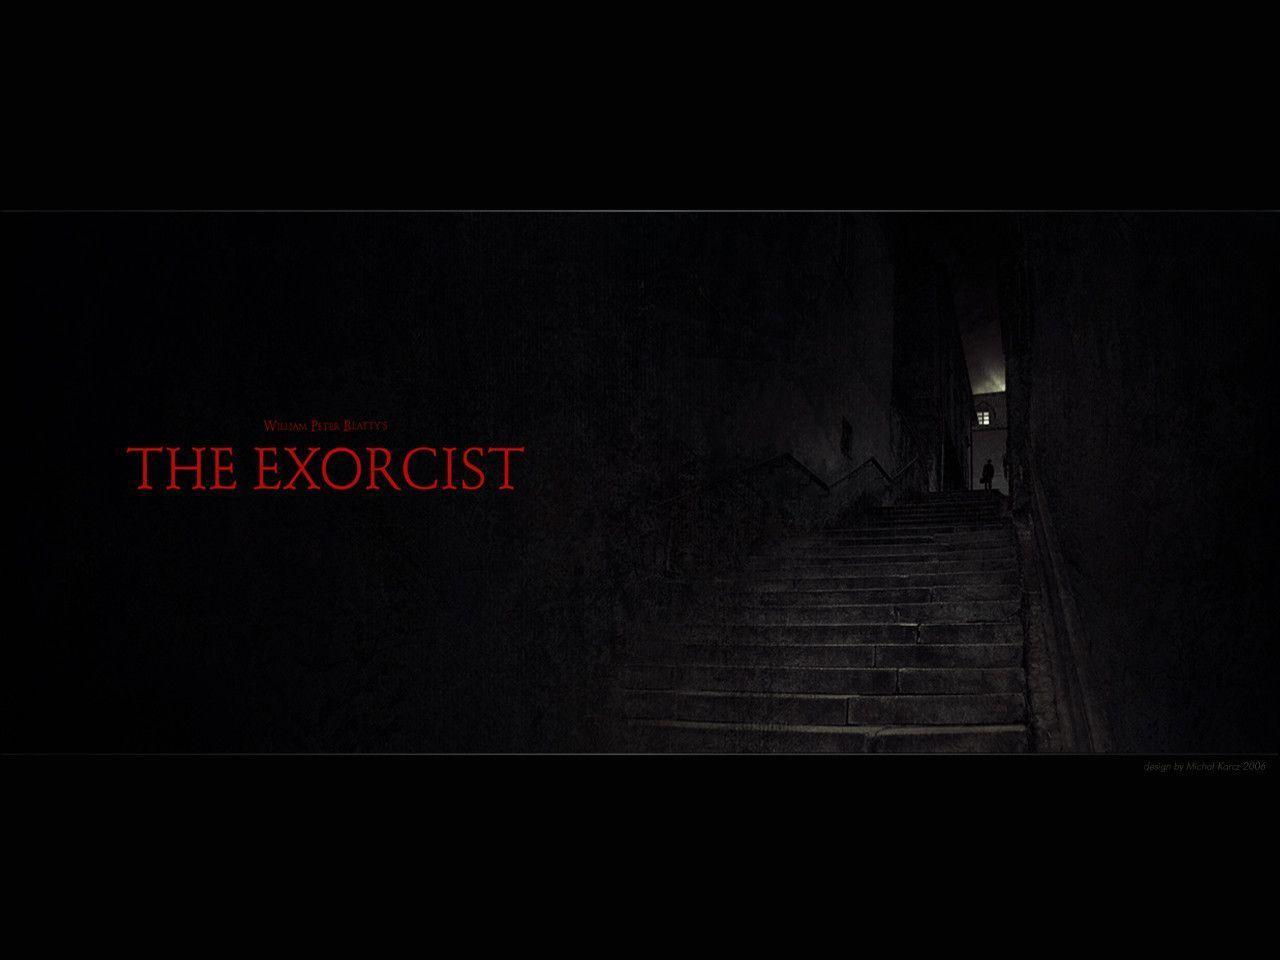 the exorcist wallpaper - photo #25